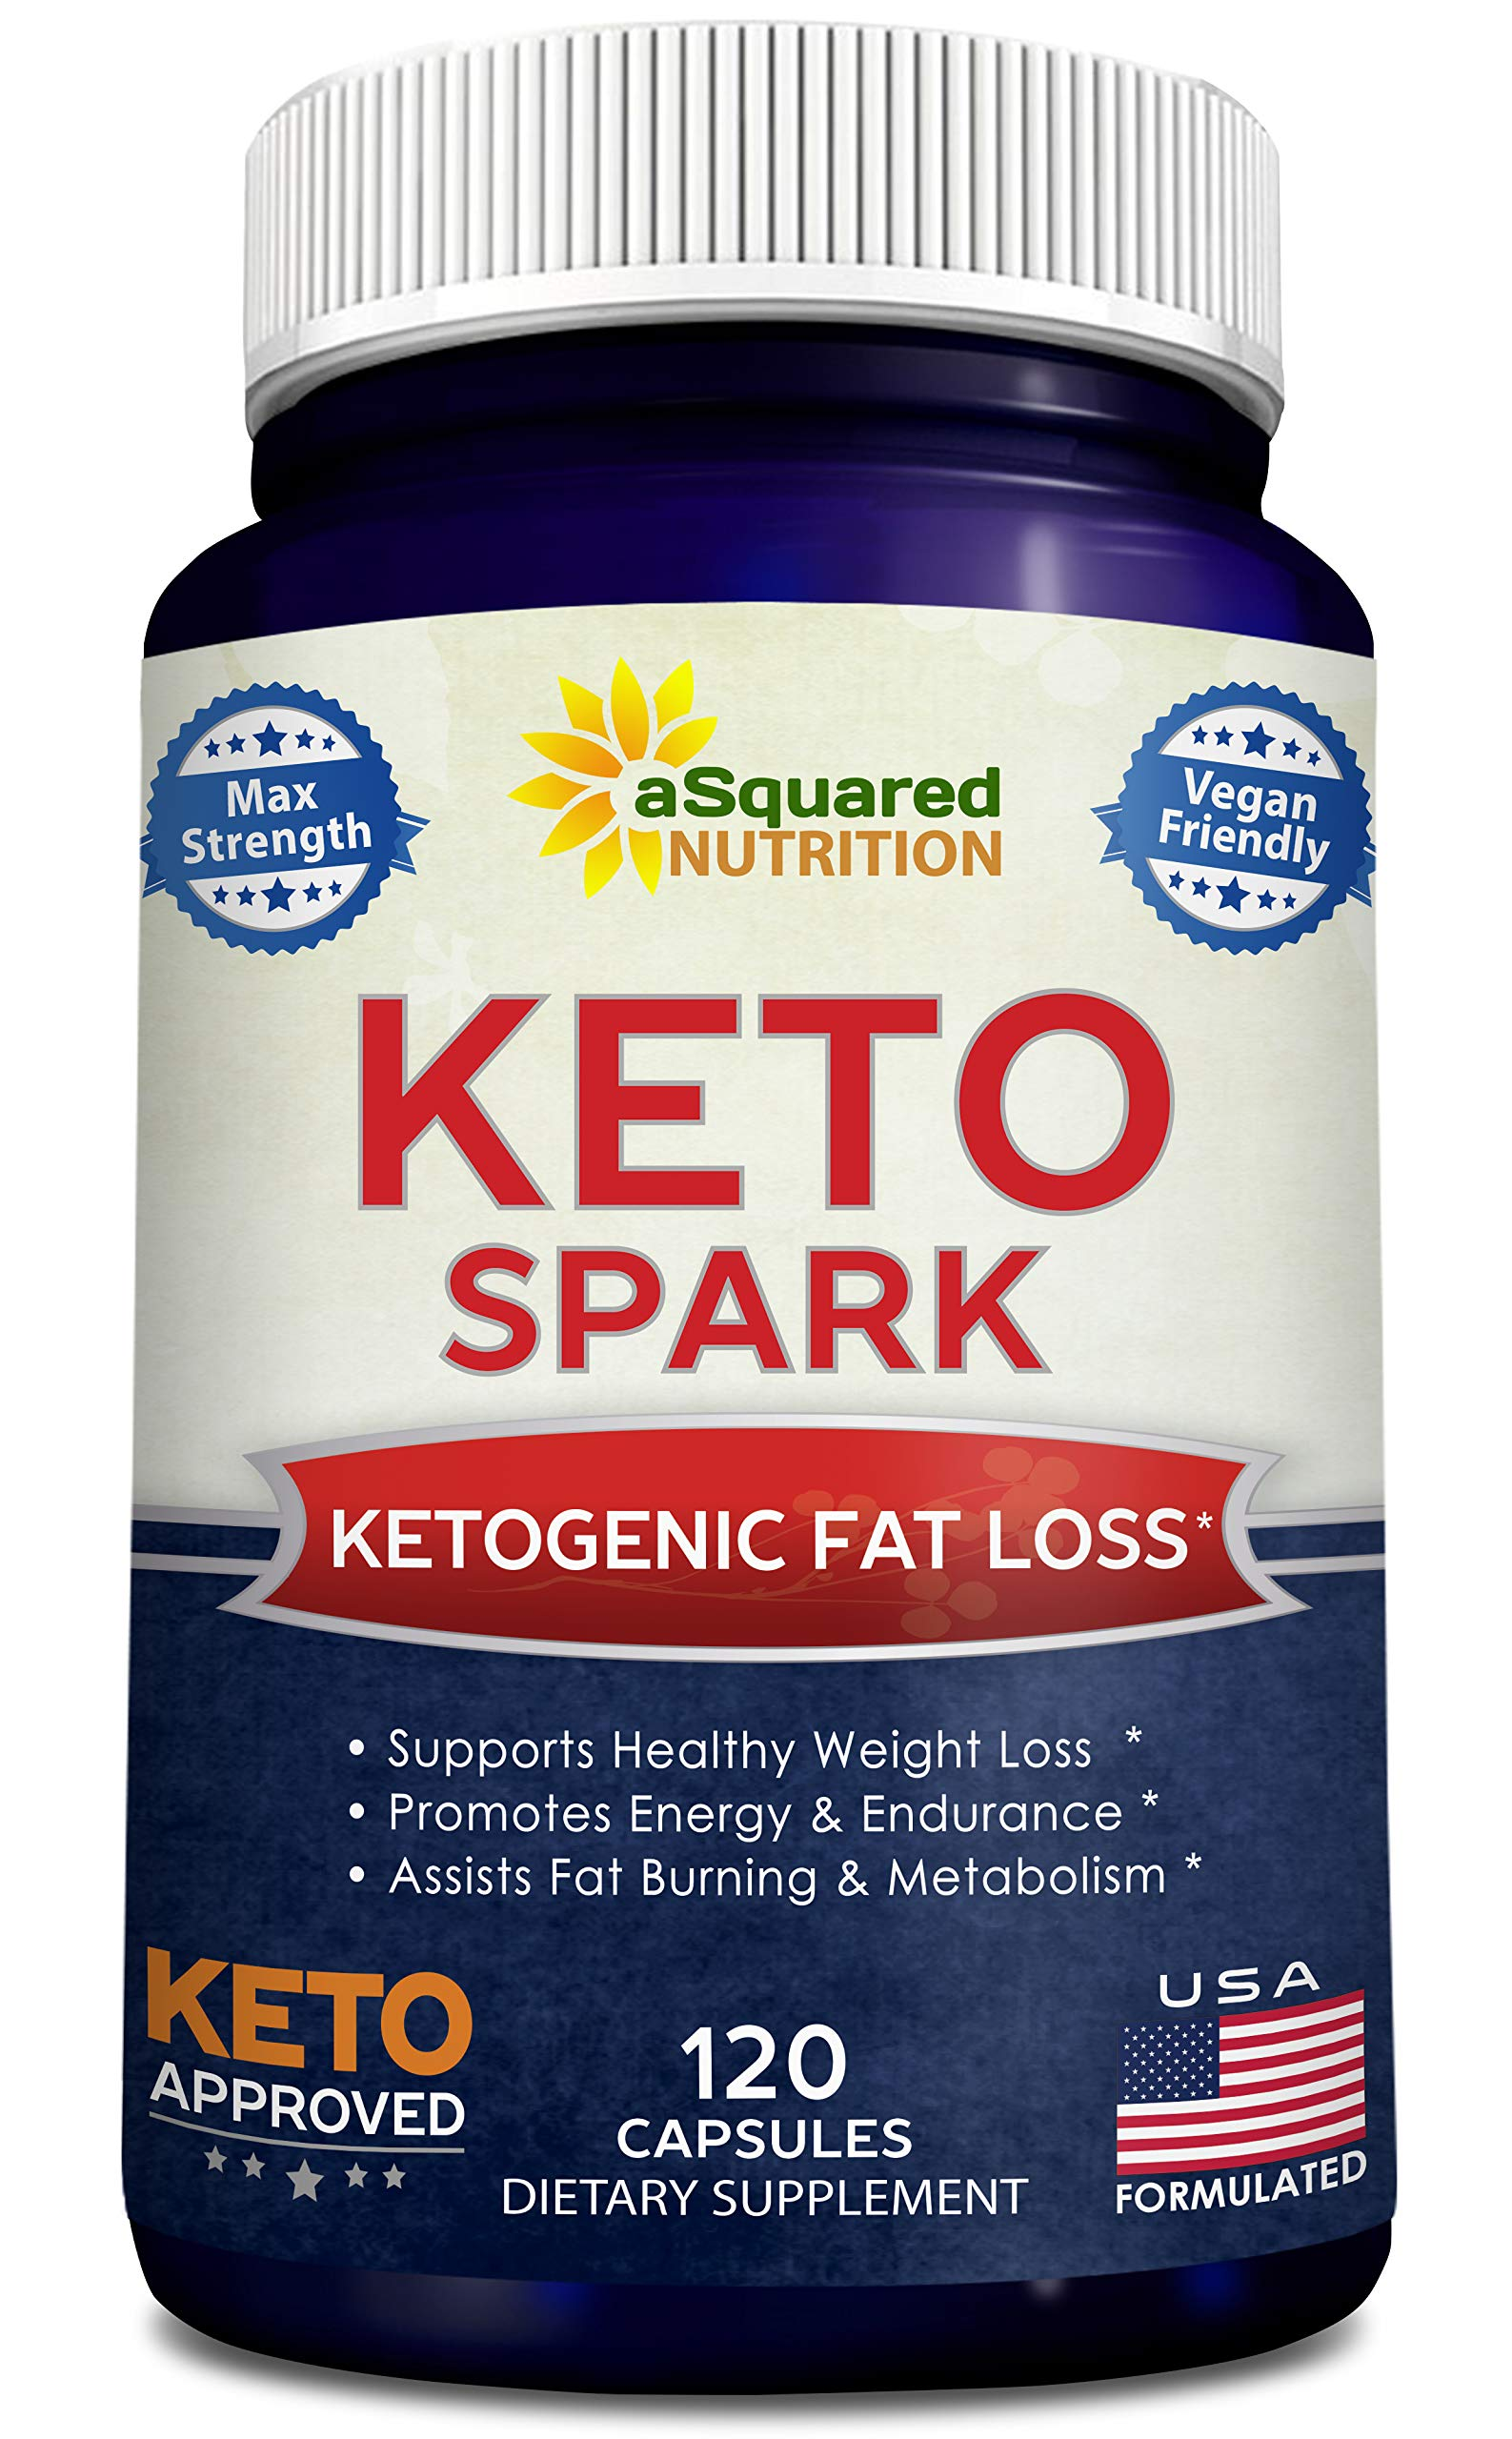 Keto Spark - Supplement for Weight Loss (120 Capsules) - Pills Approved for The Ketogenic & Paleo Diet - Helps Stay in Ketosis, Increase Energy & Focus - Caffeine & Ketones for Women & Men by aSquared Nutrition